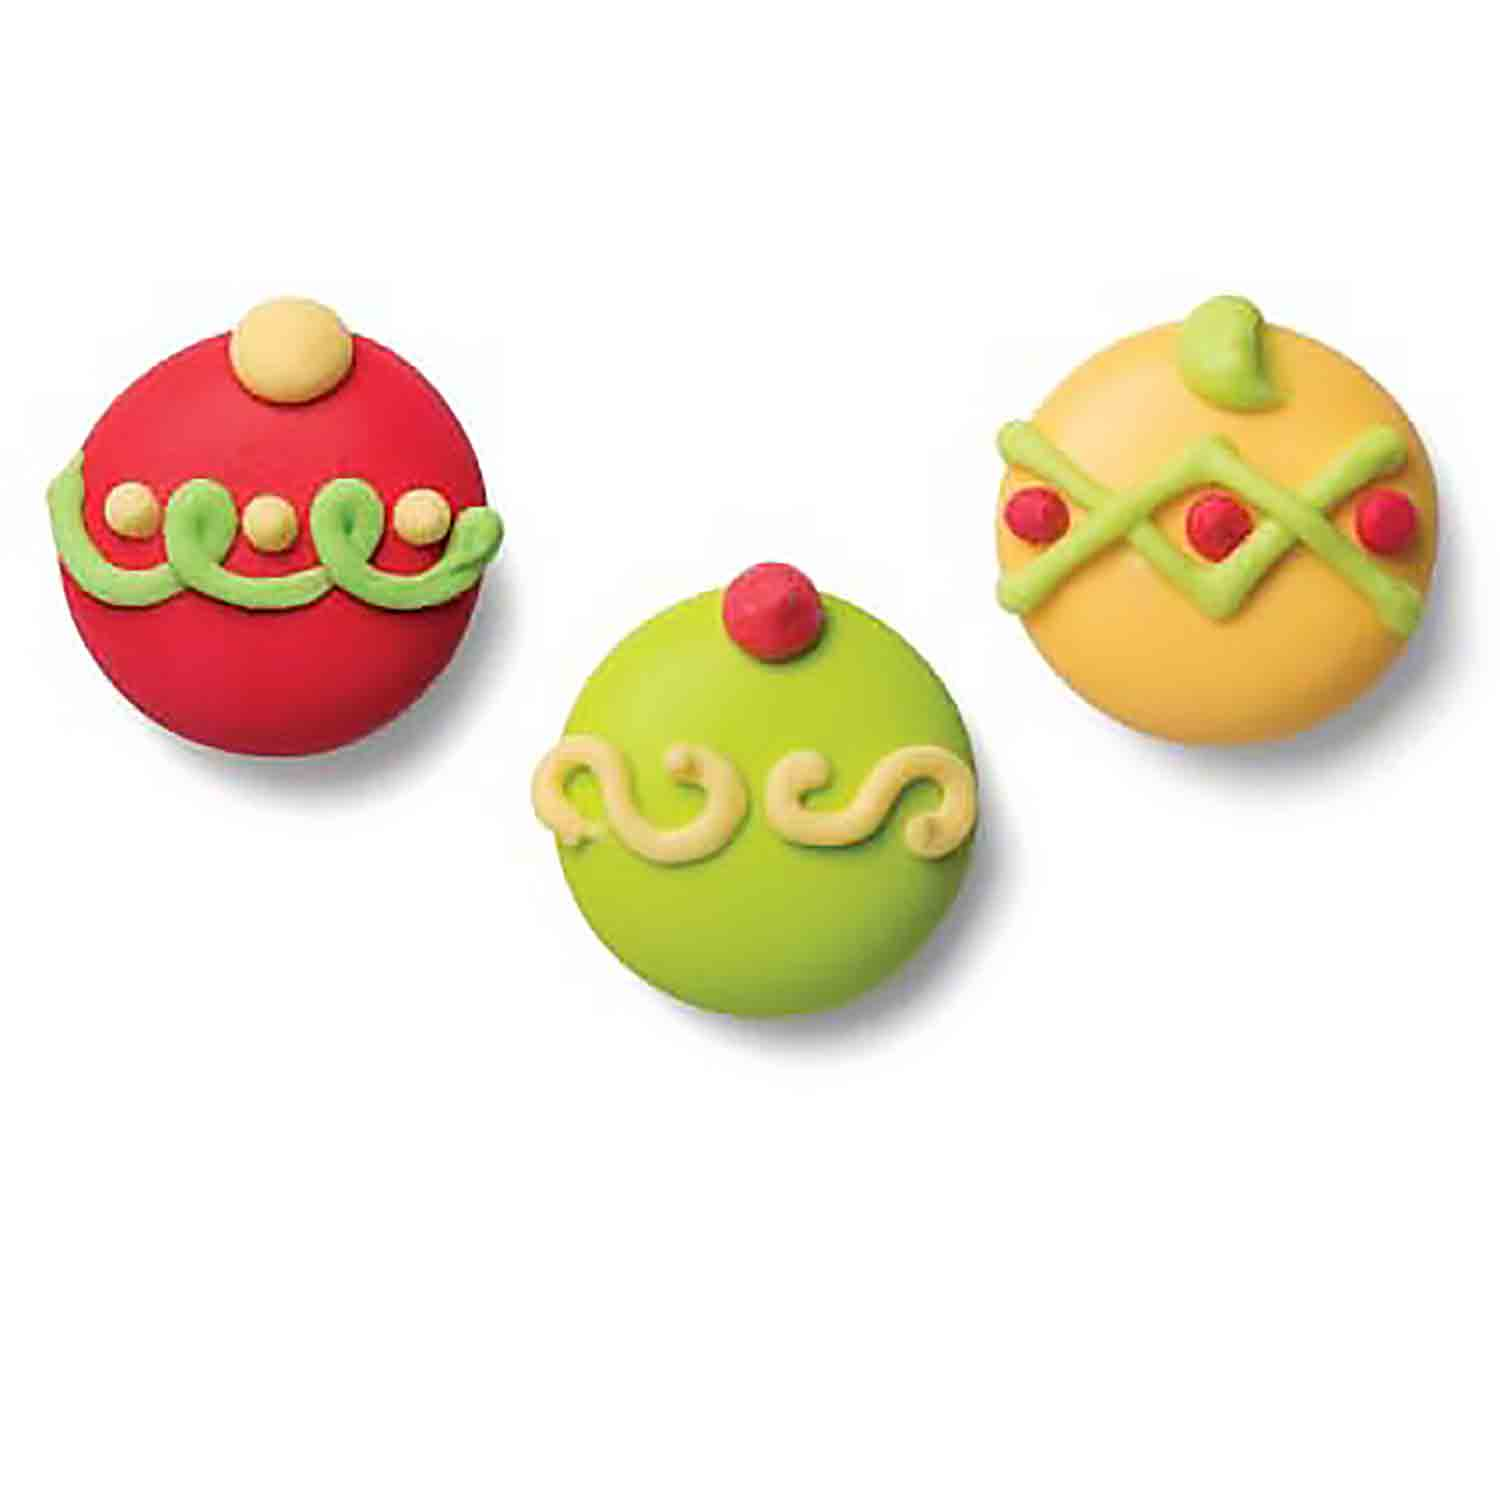 Icing Layons - Decorated Ornament Assortment